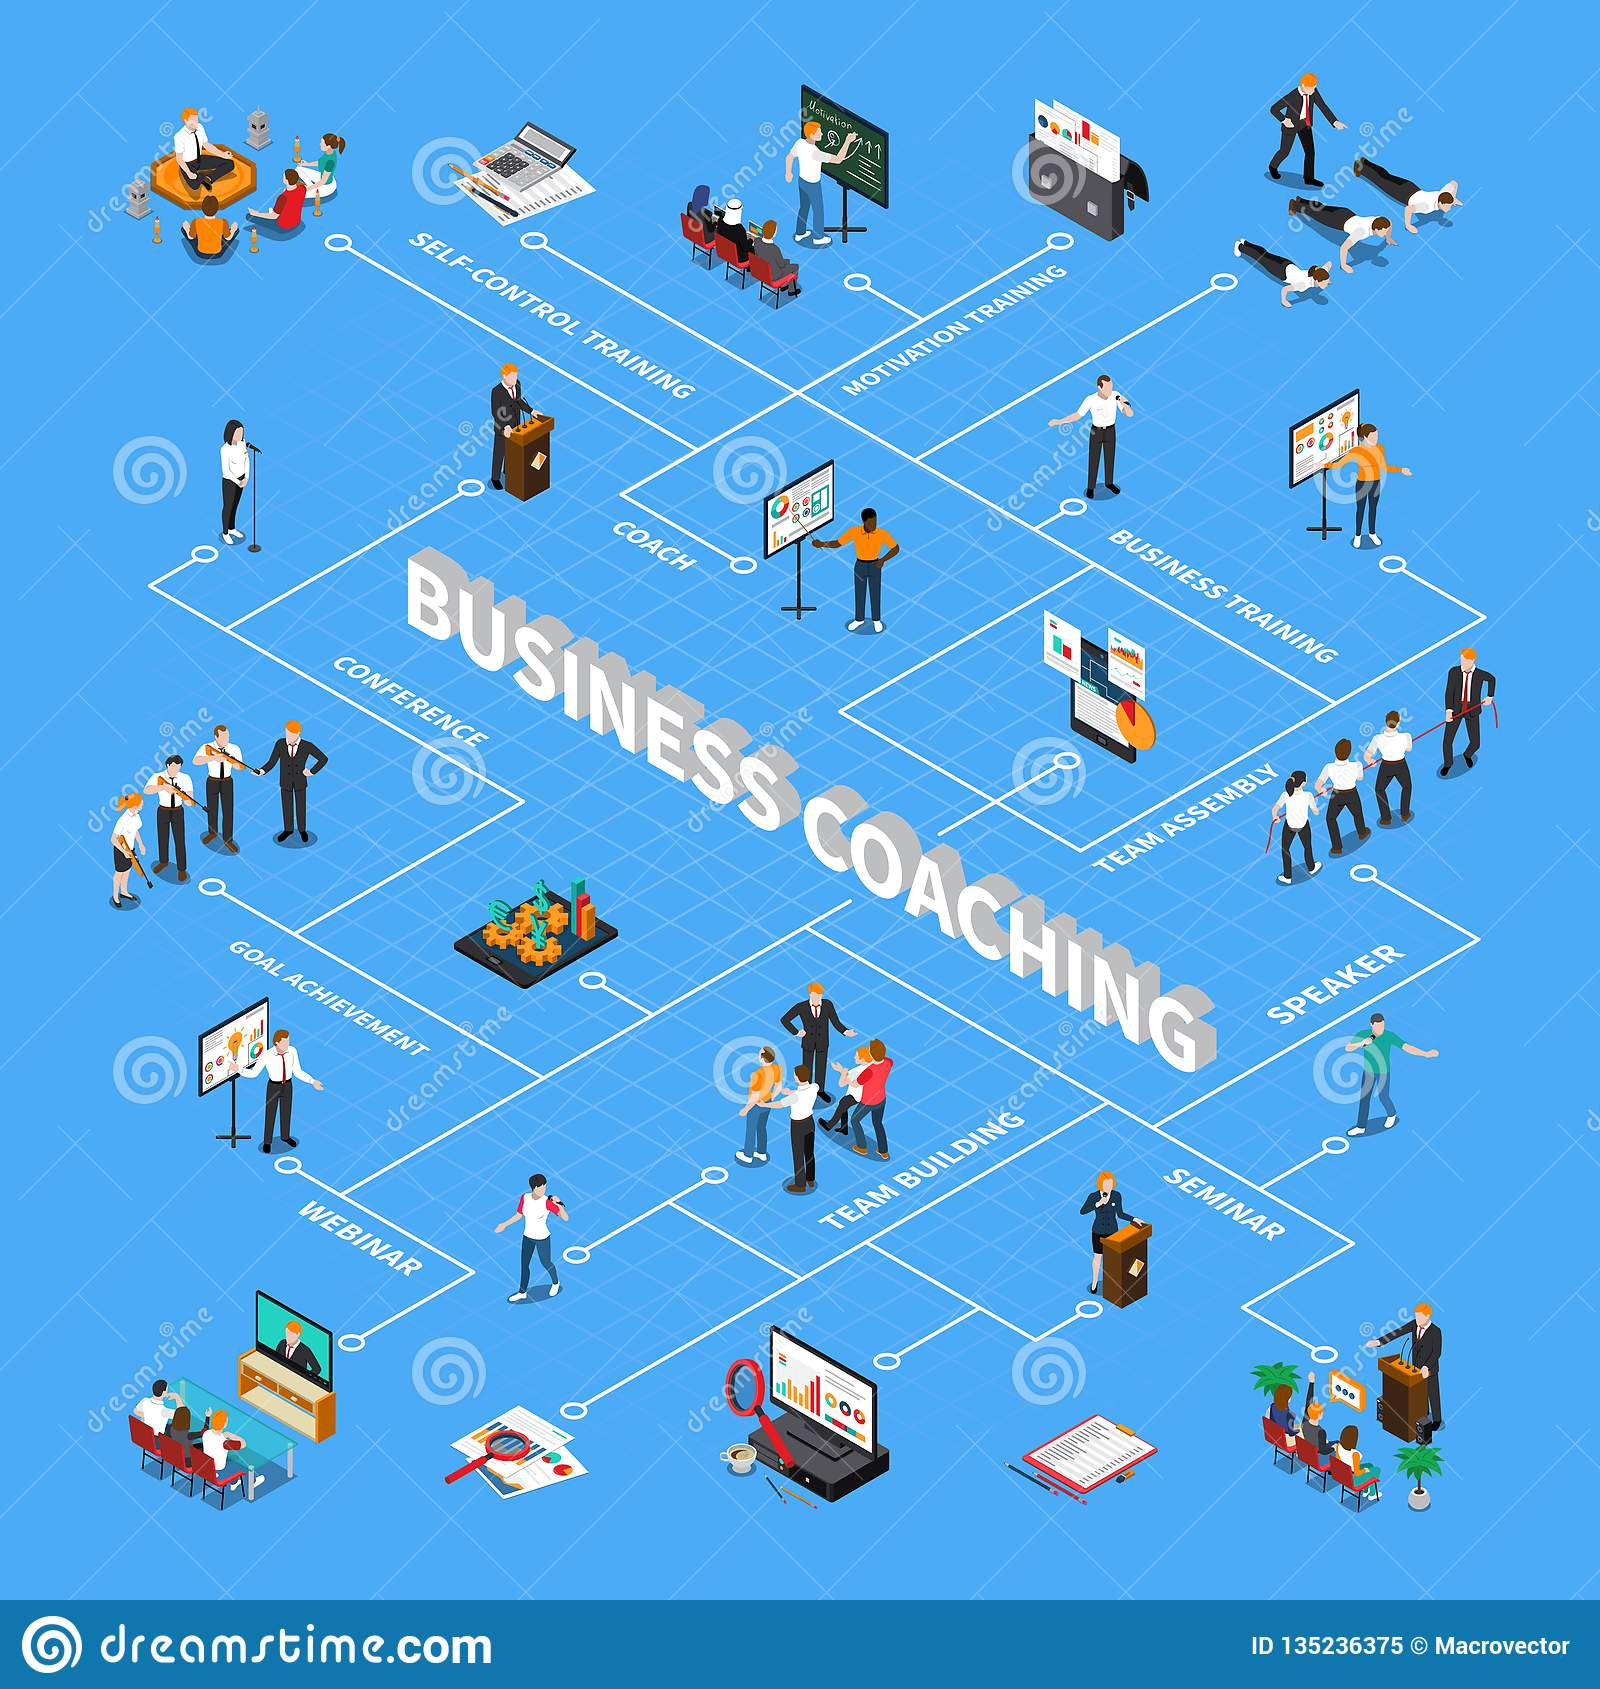 Business Coaching Isometric Flowchart